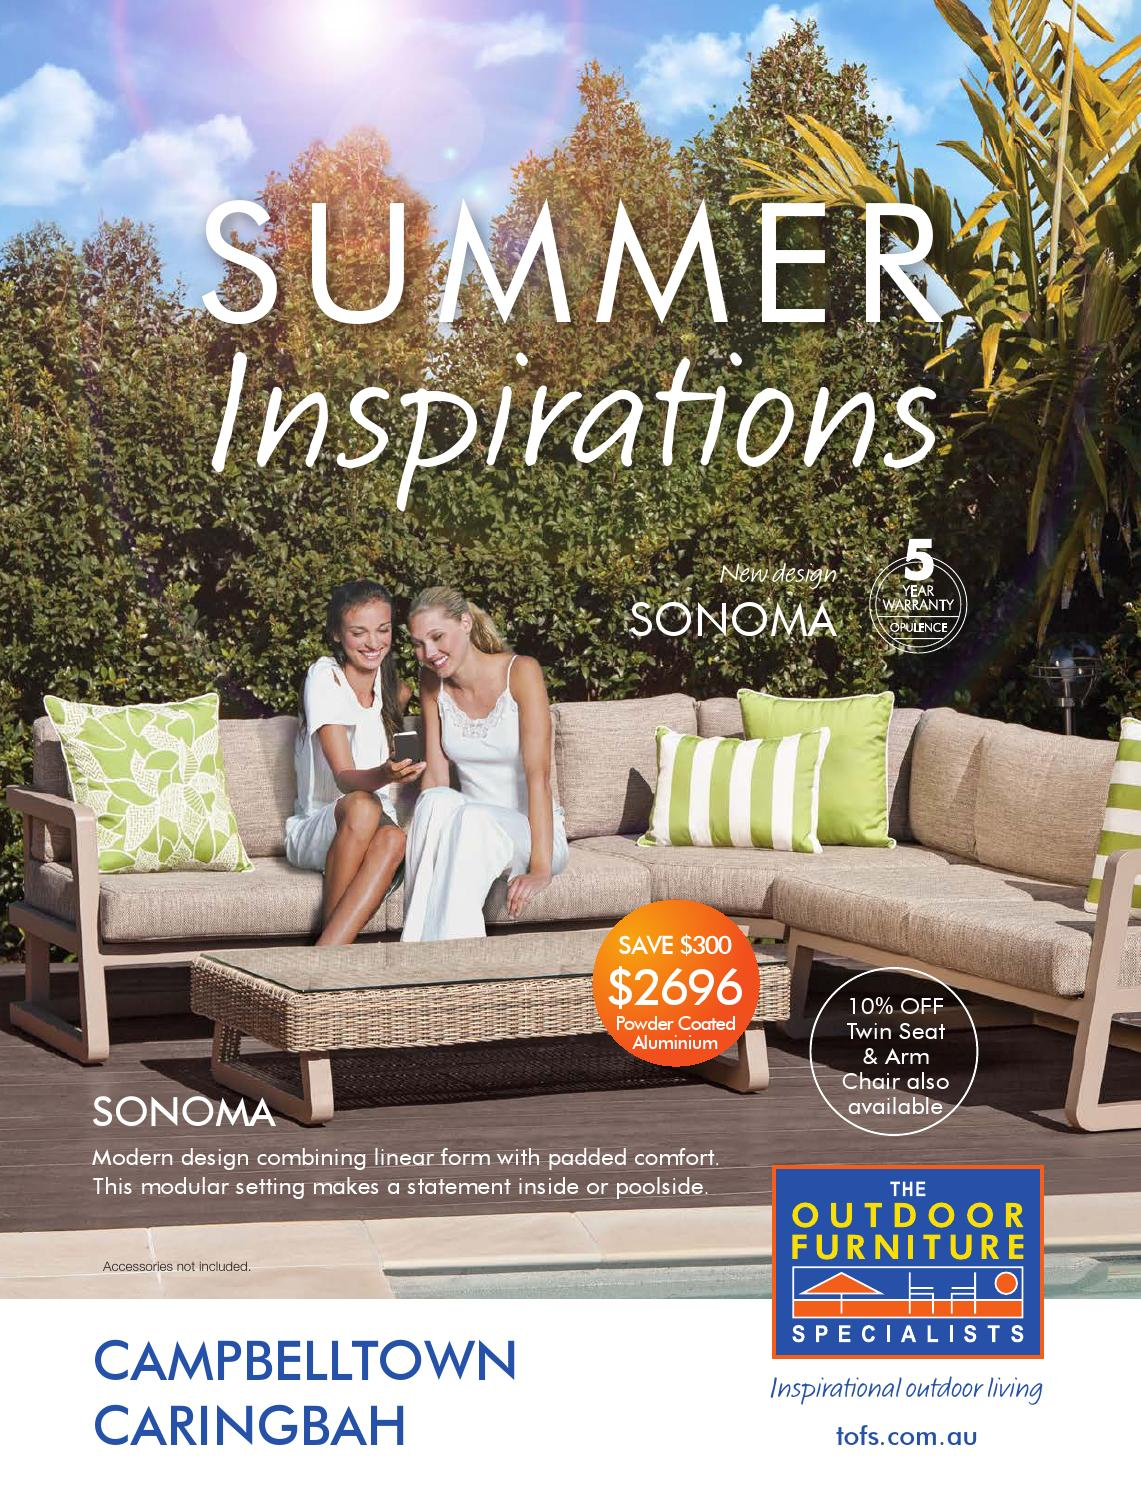 The Outdoor Furniture Specialists Campbelltown Summer